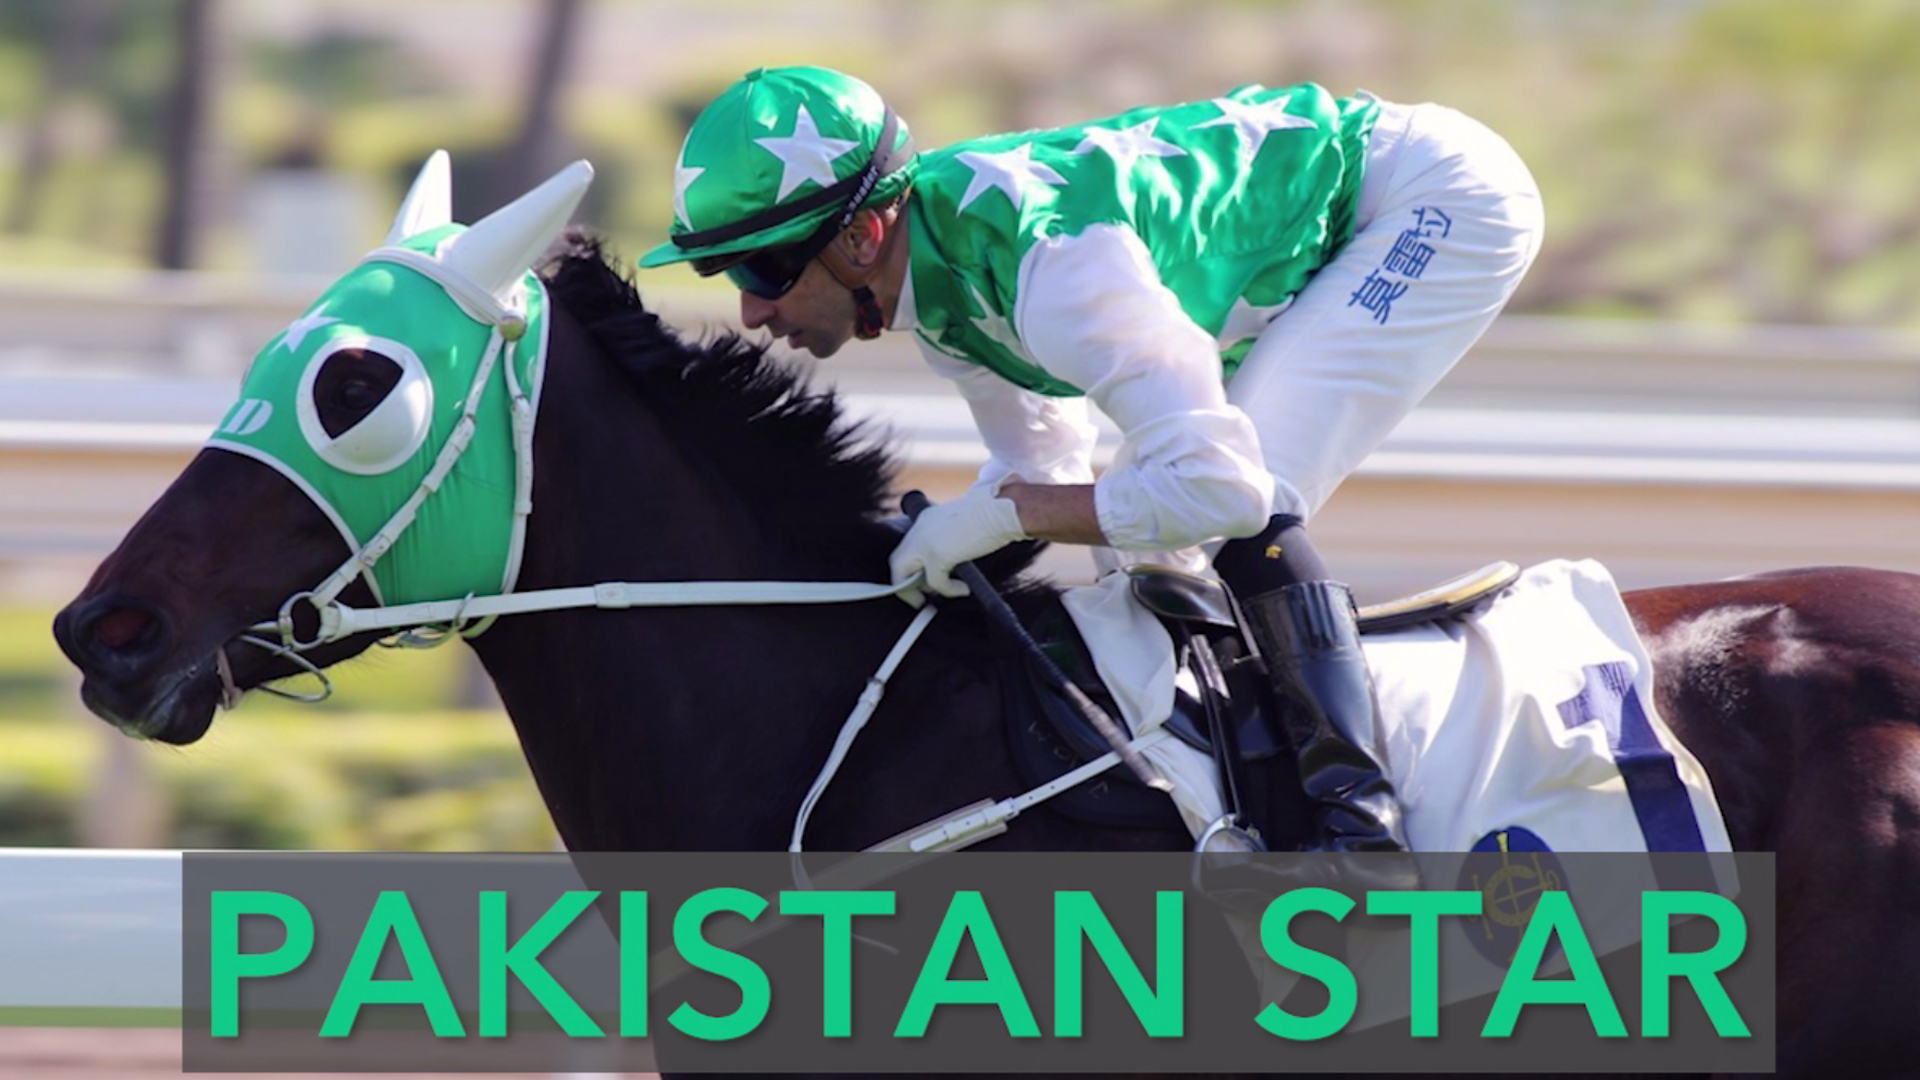 Pakistan Star refuses to run, nearly comes to halt during G3